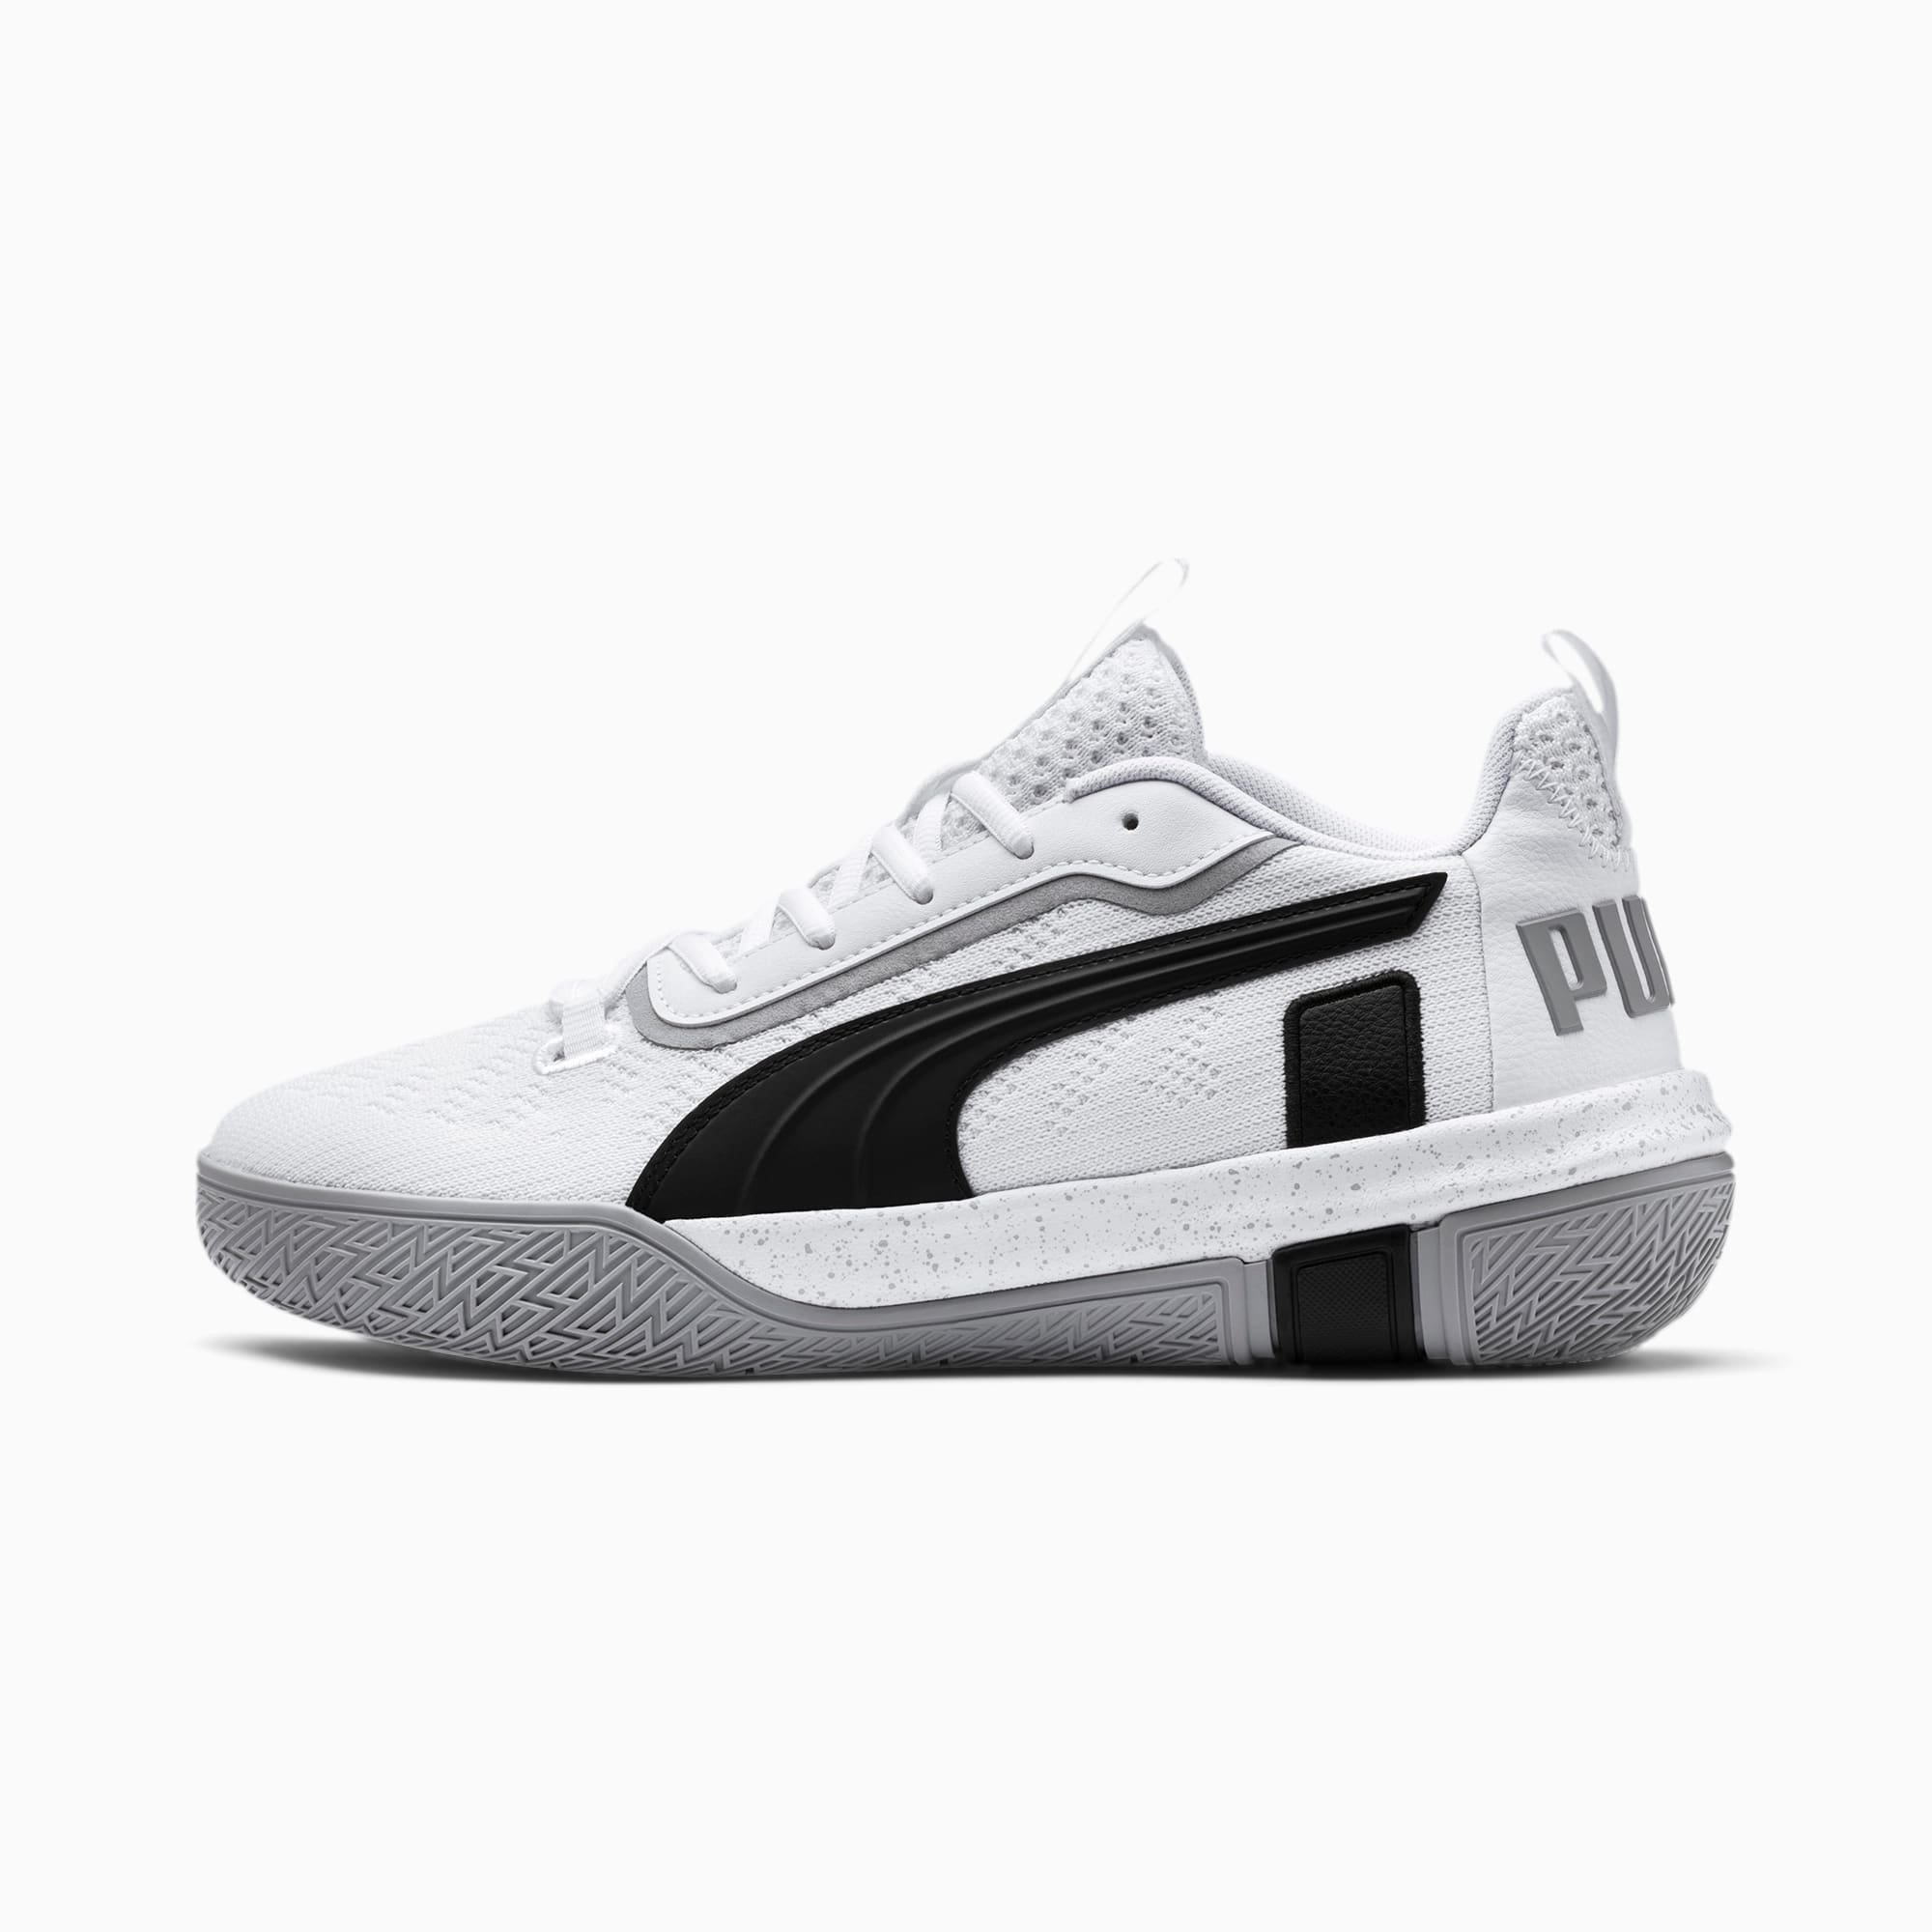 Legacy Low Basketball Shoes